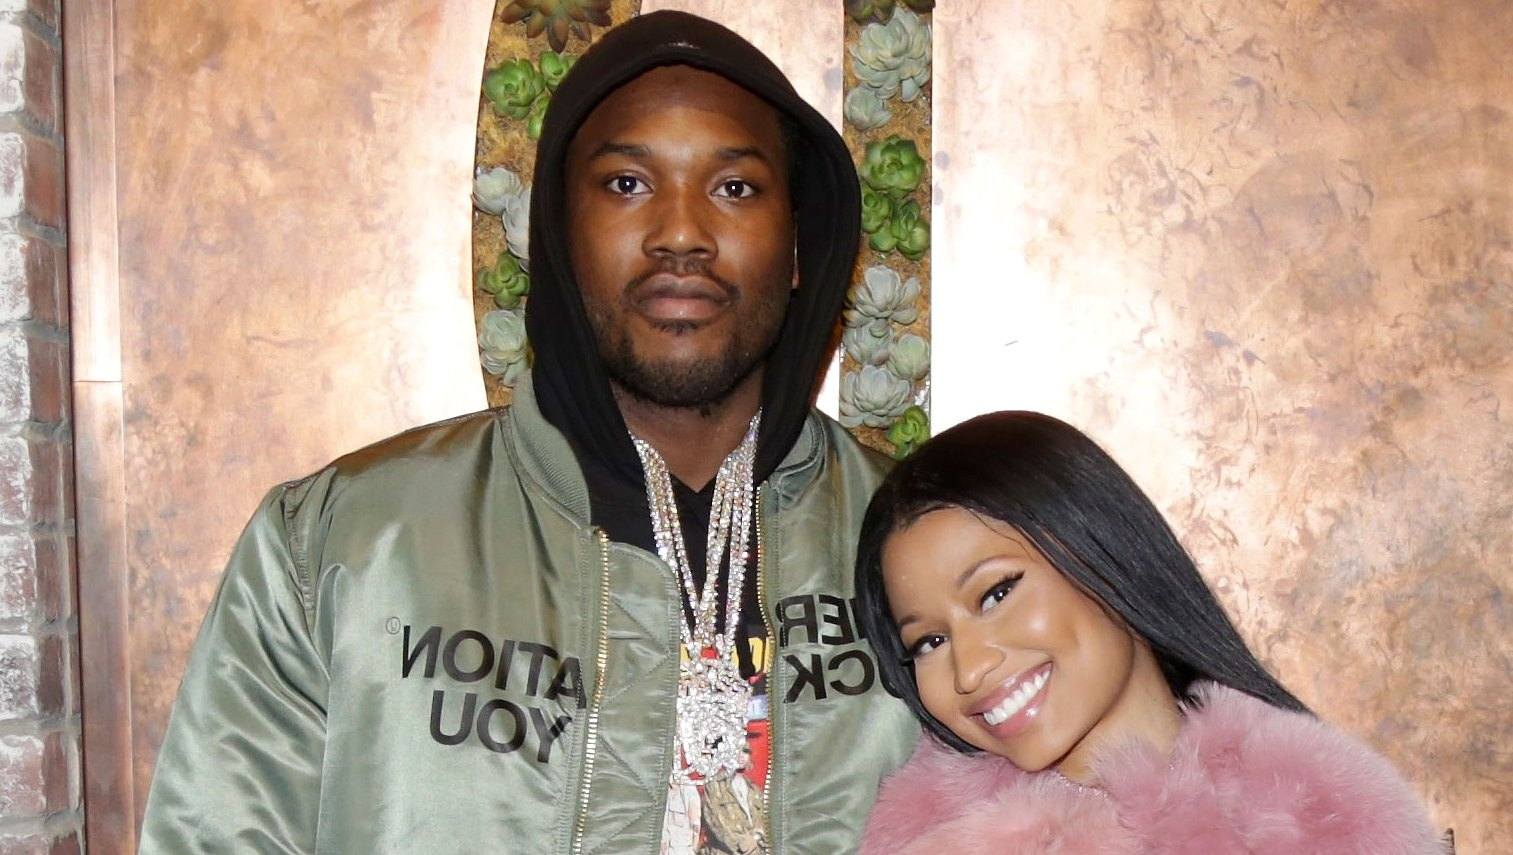 Meek Mill Realizes Nicki Minaj Blocked Him After Trying to Find Out About Her New Man